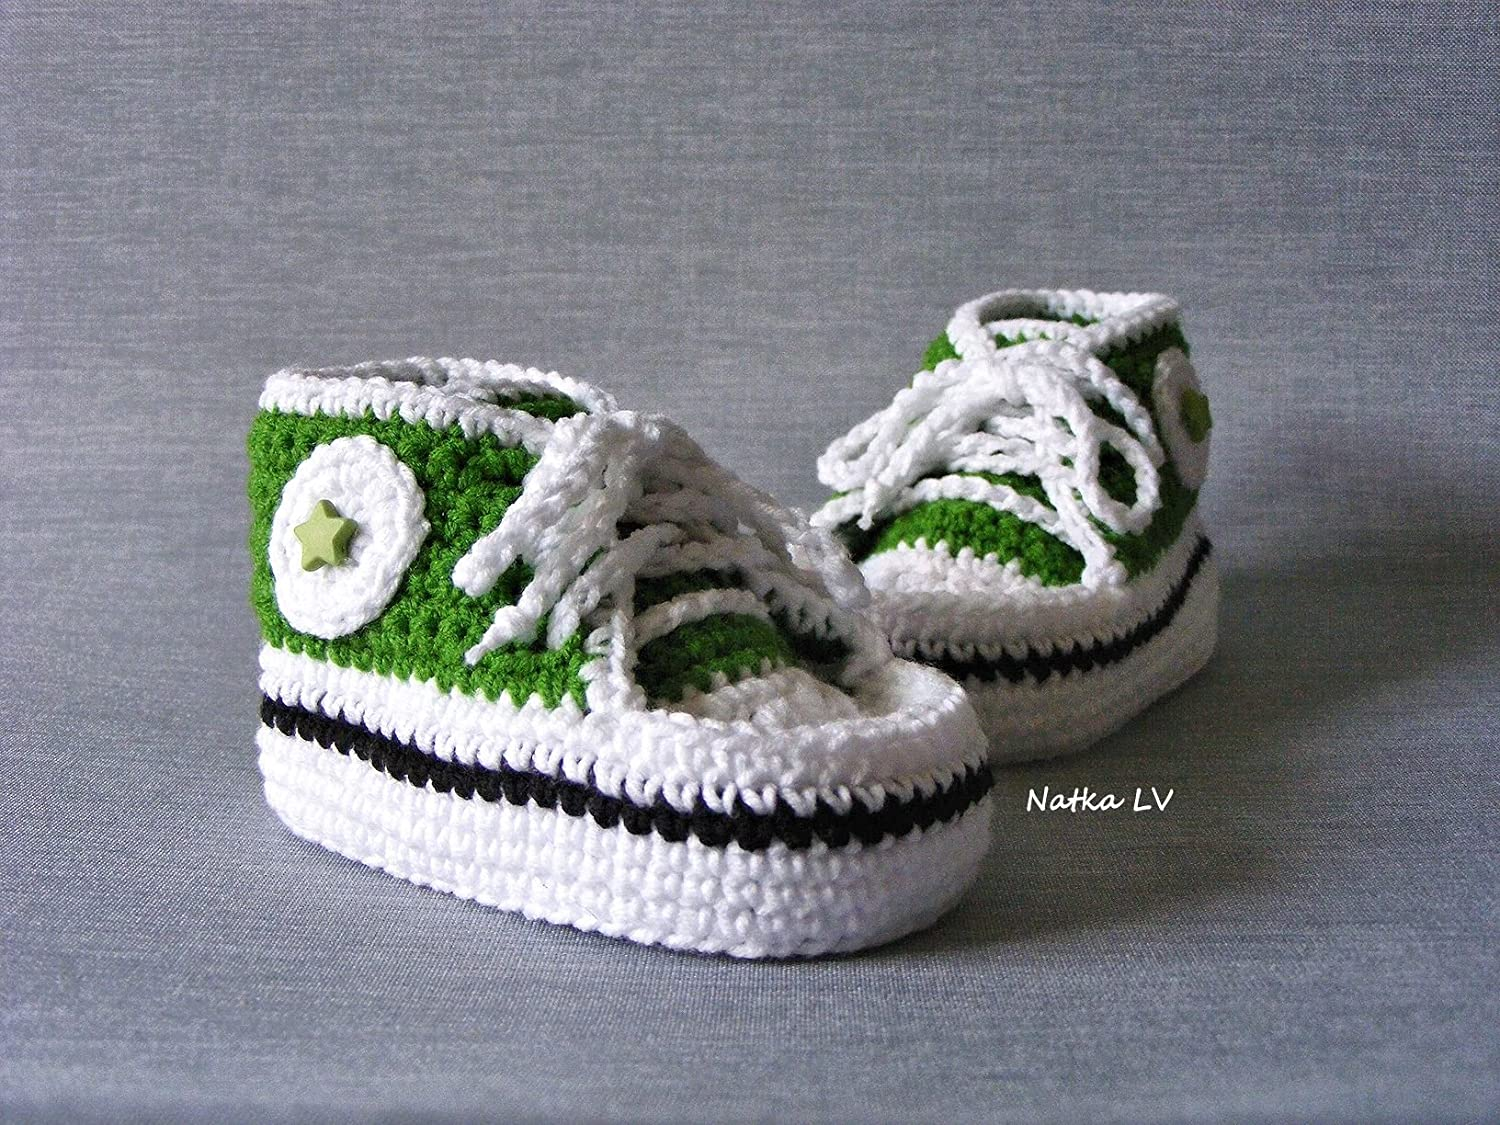 f265e4650 Baby crochet sneakers, baby green booties, baby boy summer booties, baby  shoes, grass green white booties, baby foot wear, newborn baby booties, ...